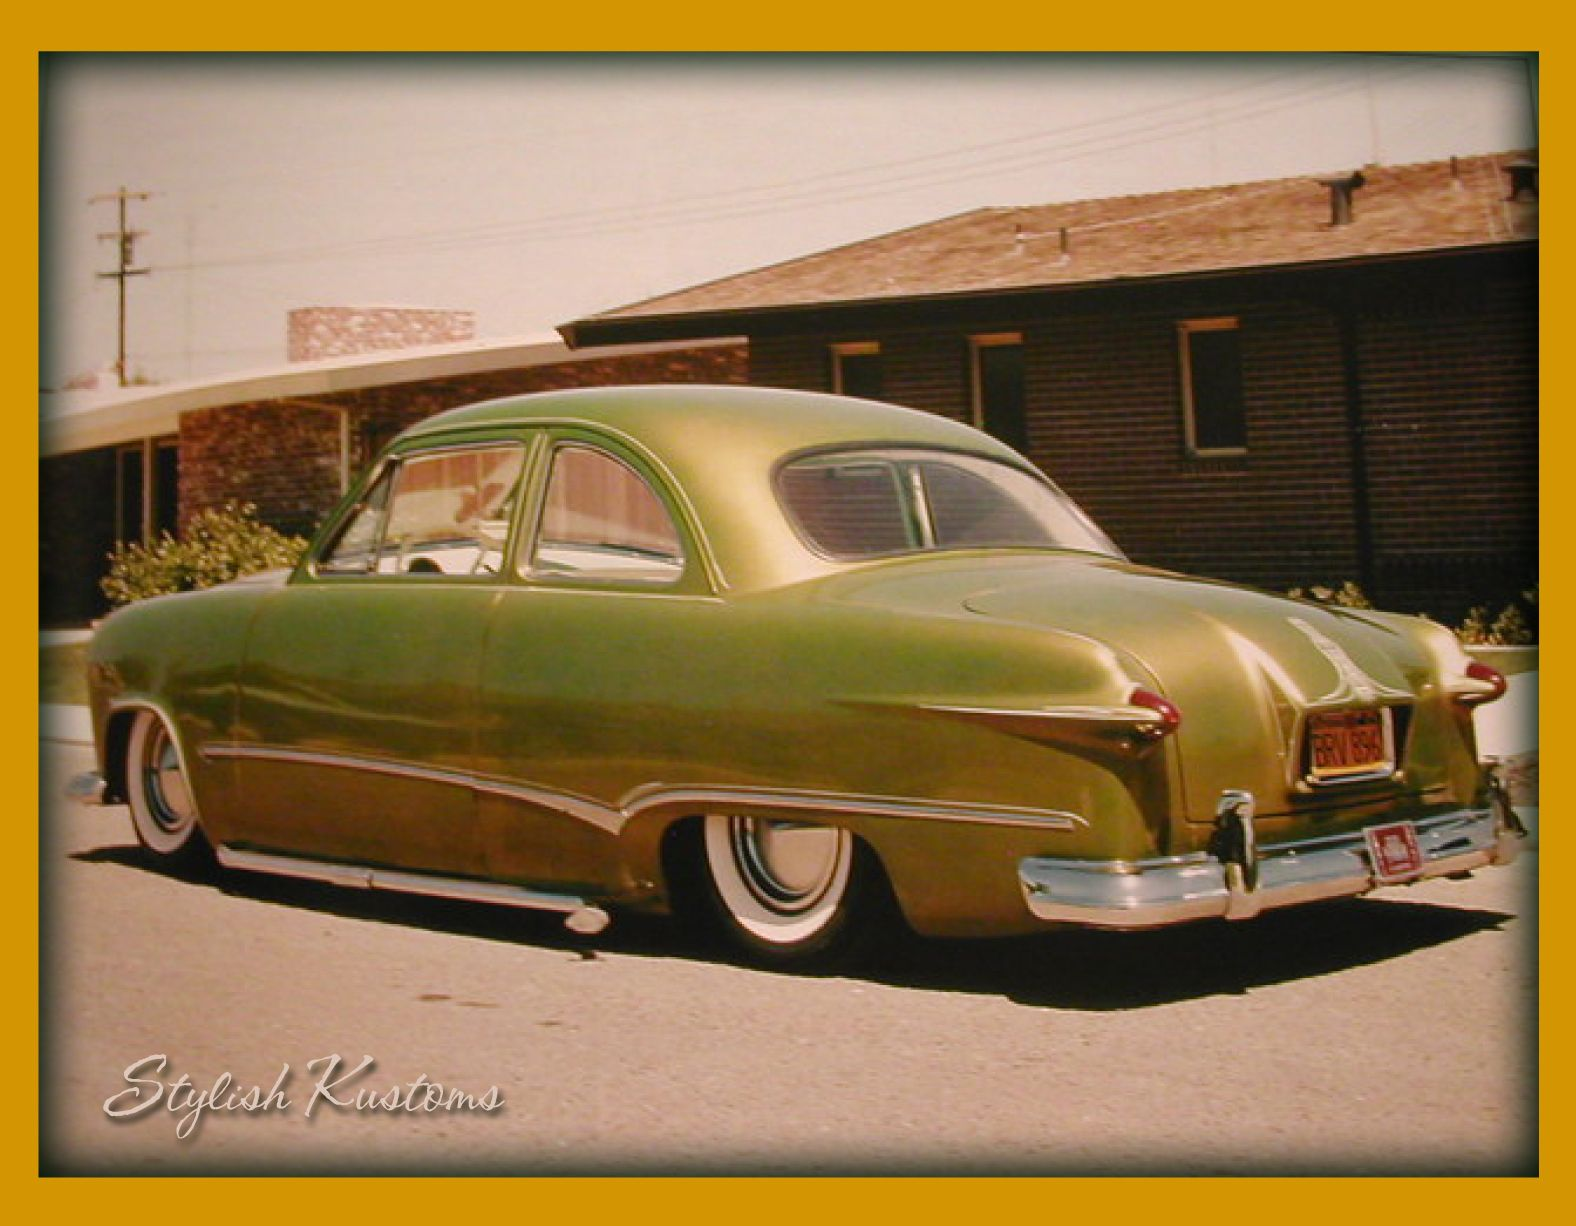 Leroy gualart s sweet shoebox ford later more kustom mods were done but this is my favorite version of this car